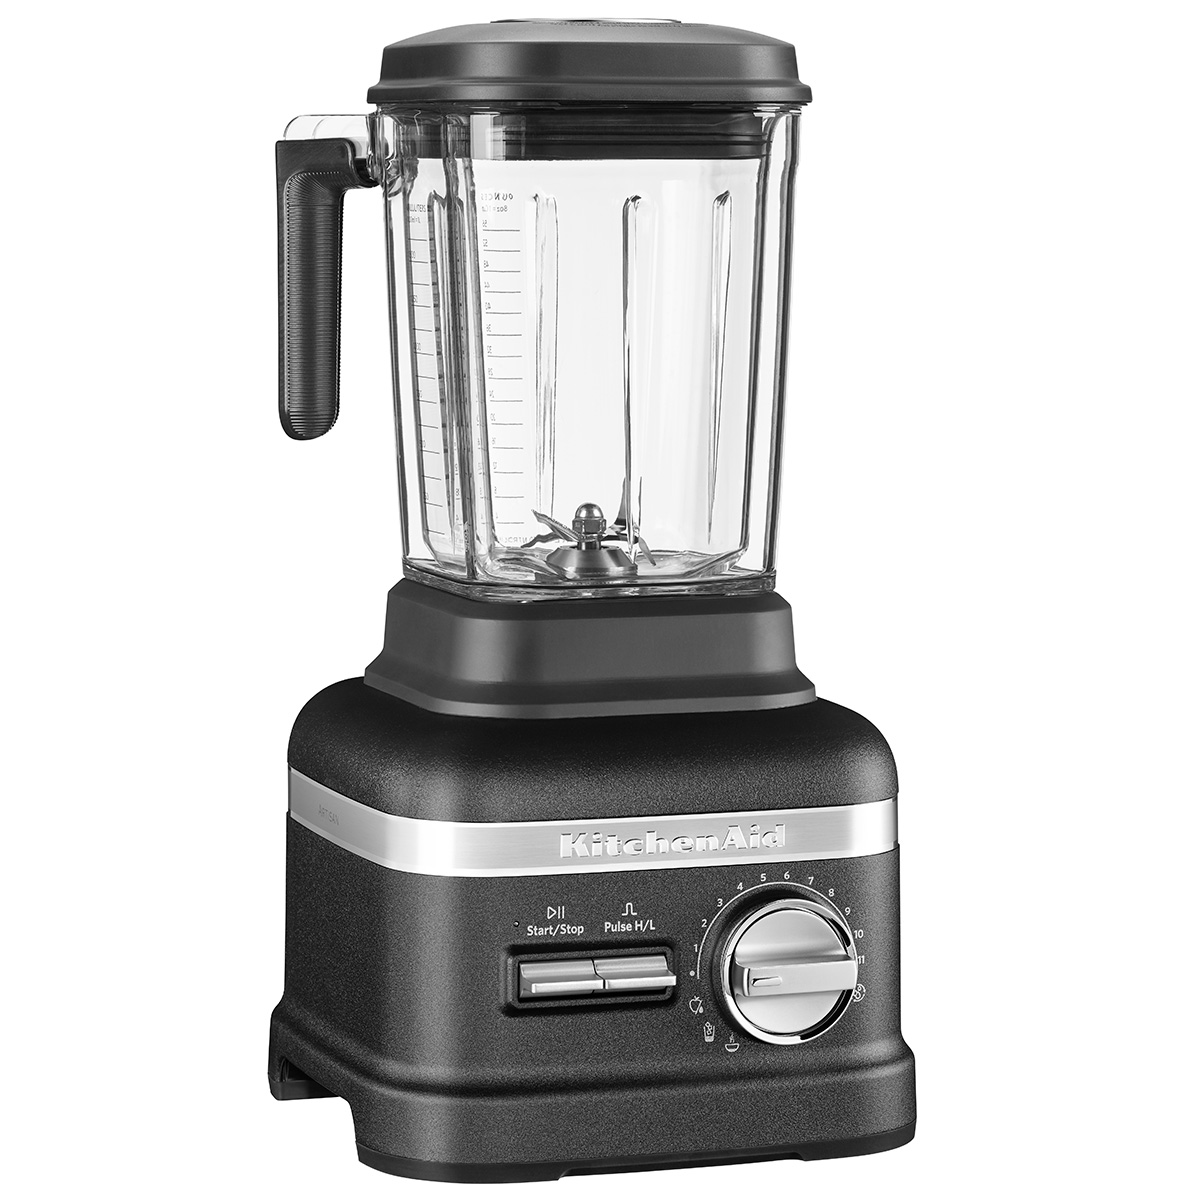 KitchenAid bordblender - Artisan Power Plus - Sort